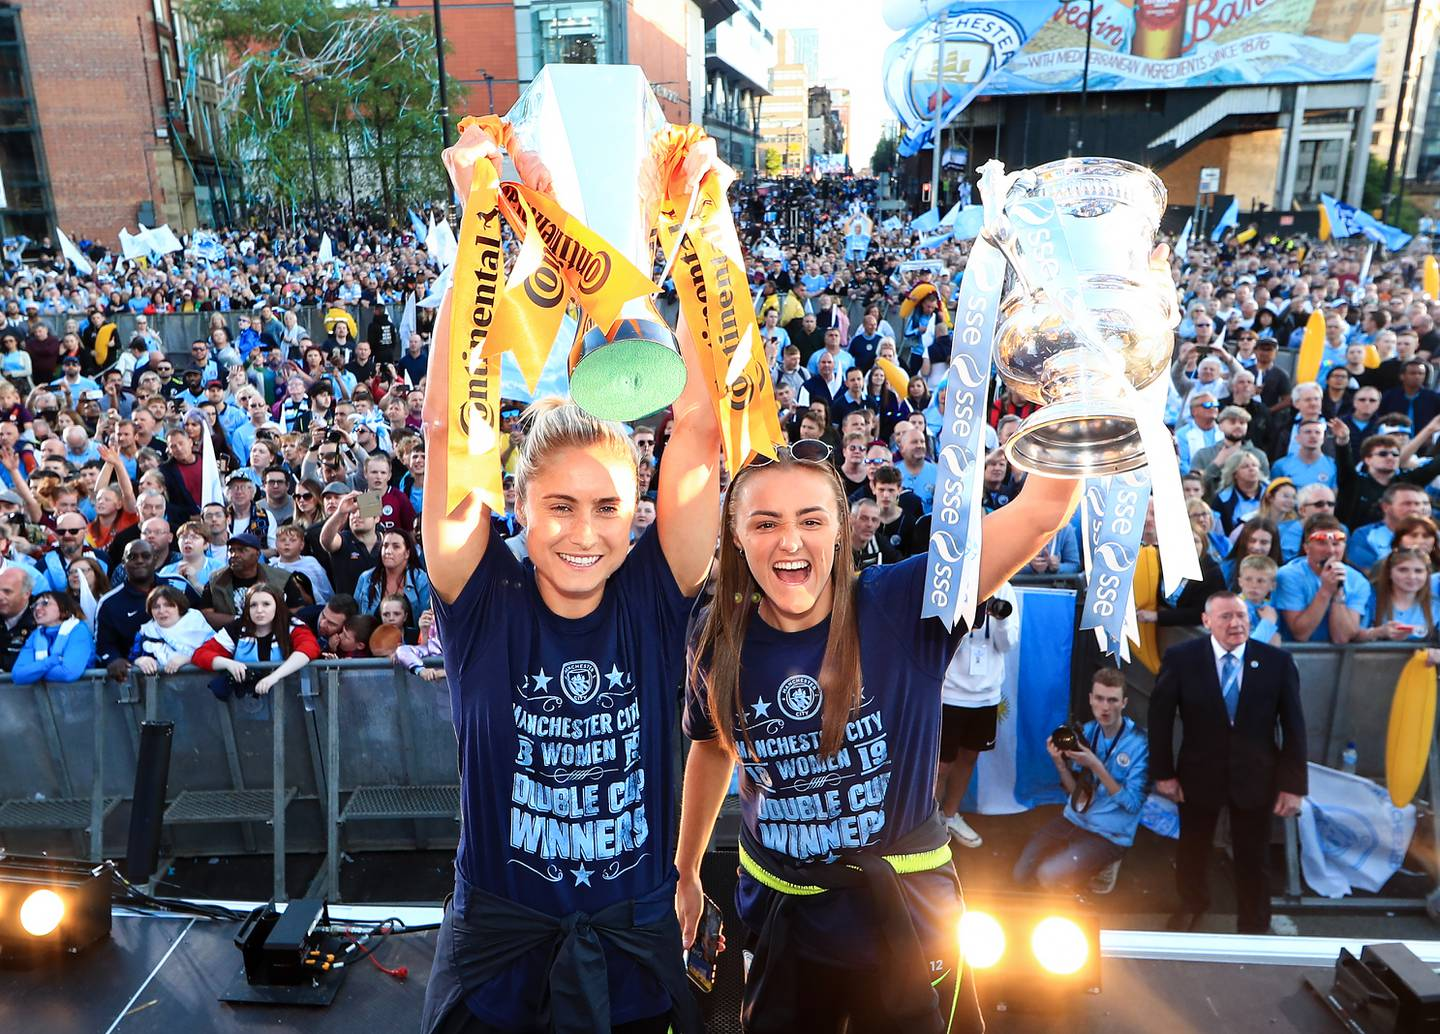 MANCHESTER, ENGLAND - MAY 20: Steph Houghton and Georgia Stanway of Manchester City celebrate with the Women's FA Cup and Continental Cup trophies during the Manchester City Teams Celebration Parade on  on May 20, 2019 in Manchester, England. (Photo by Matt McNulty - Manchester City/Manchester City FC via Getty Images)